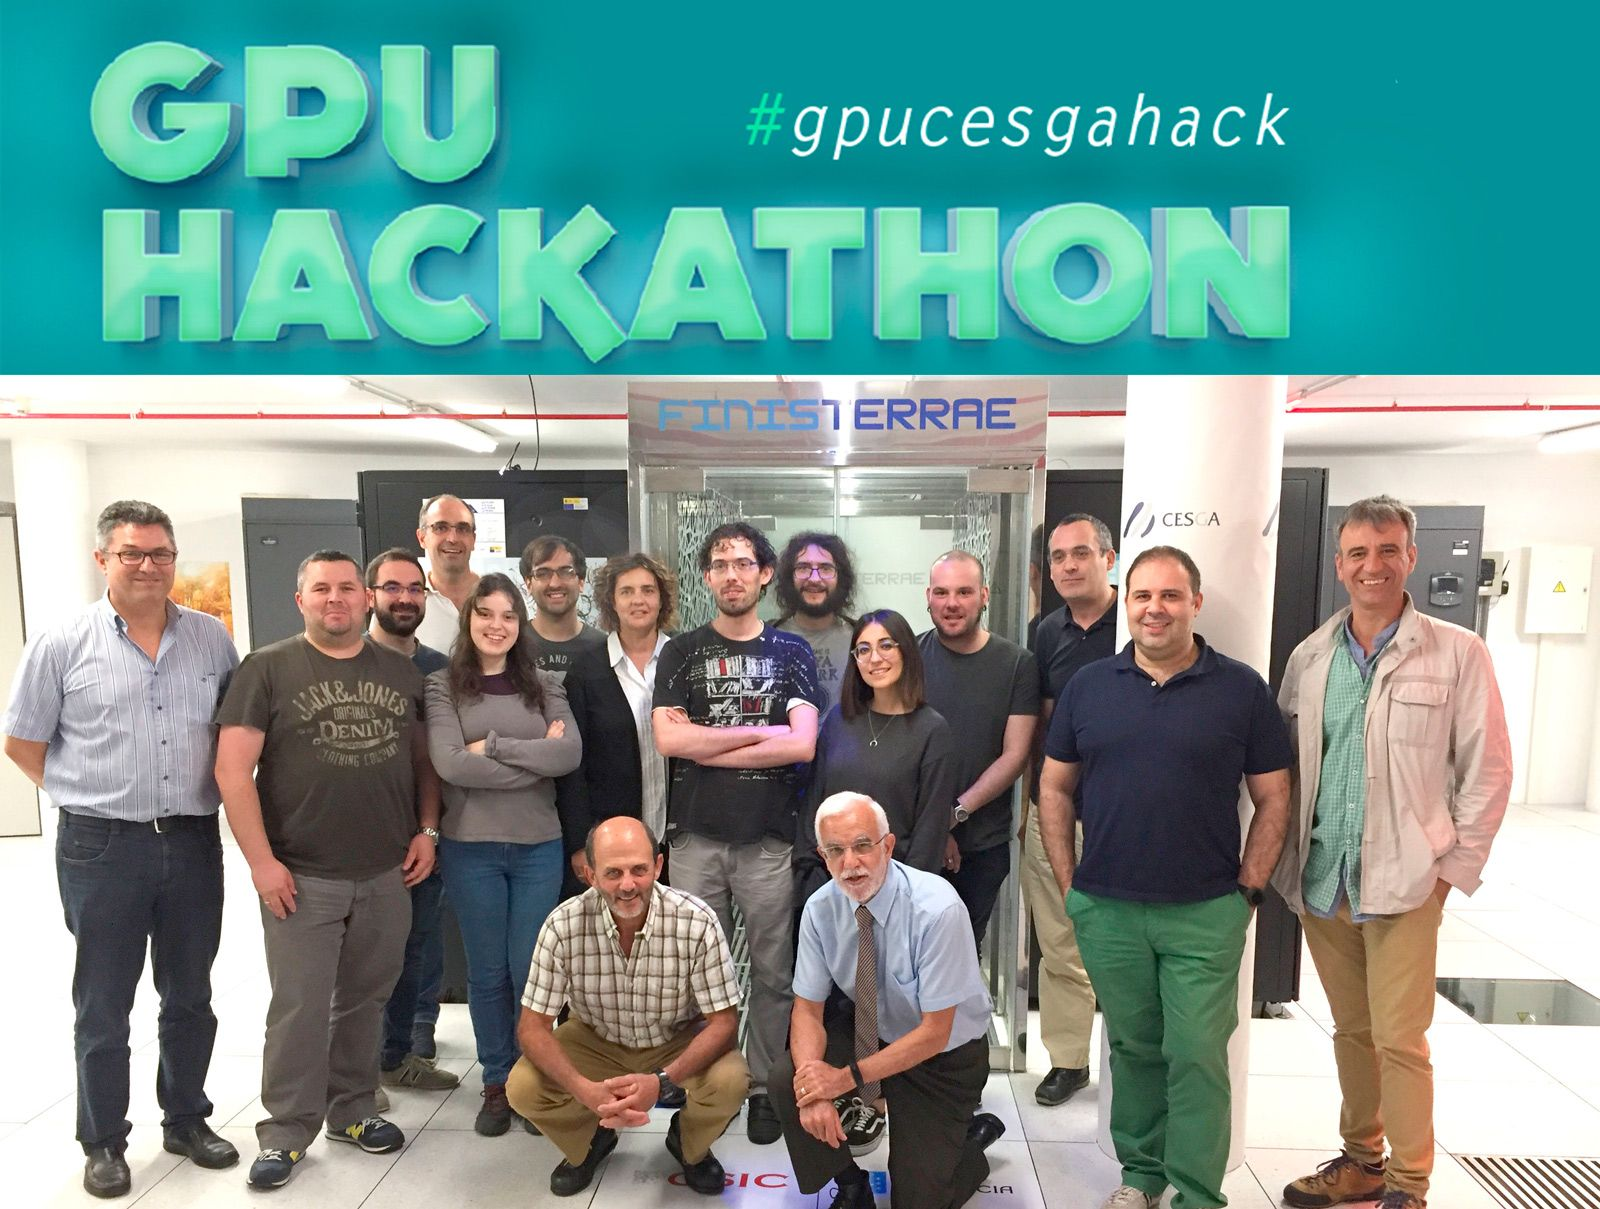 oficial-photo-Hackathon